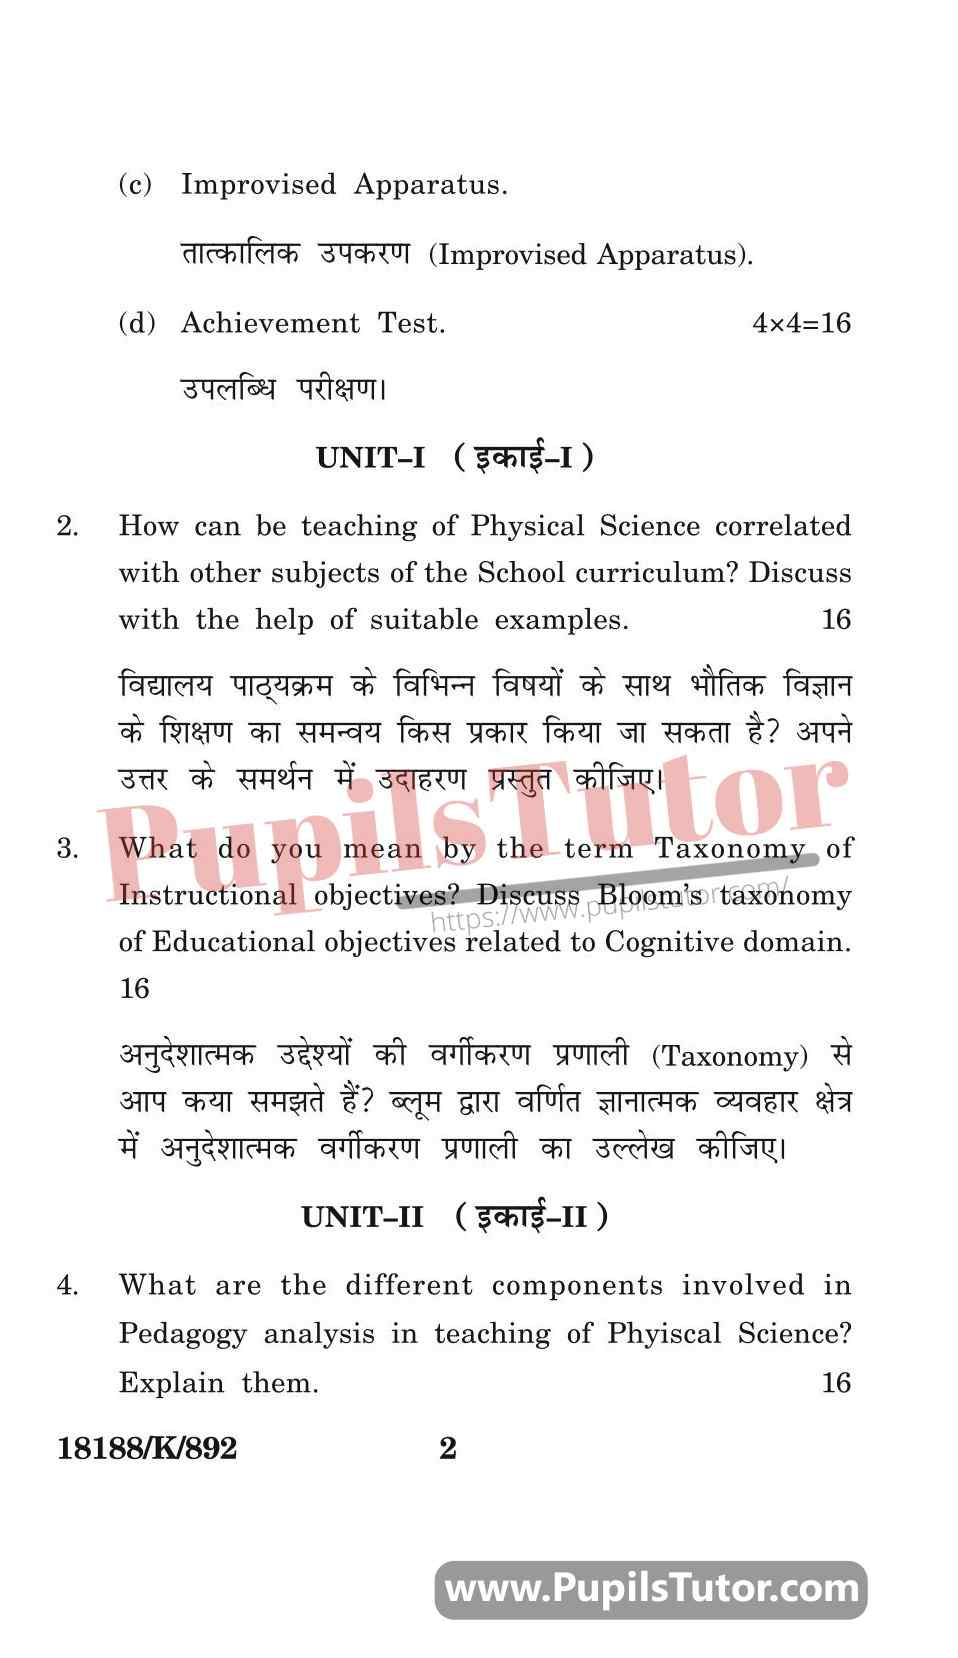 KUK (Kurukshetra University, Haryana) Pedagogy Of Physical Science Question Paper 2020 For B.Ed 1st And 2nd Year And All The 4 Semesters In English And Hindi Medium Free Download PDF - Page 2 - www.pupilstutor.com